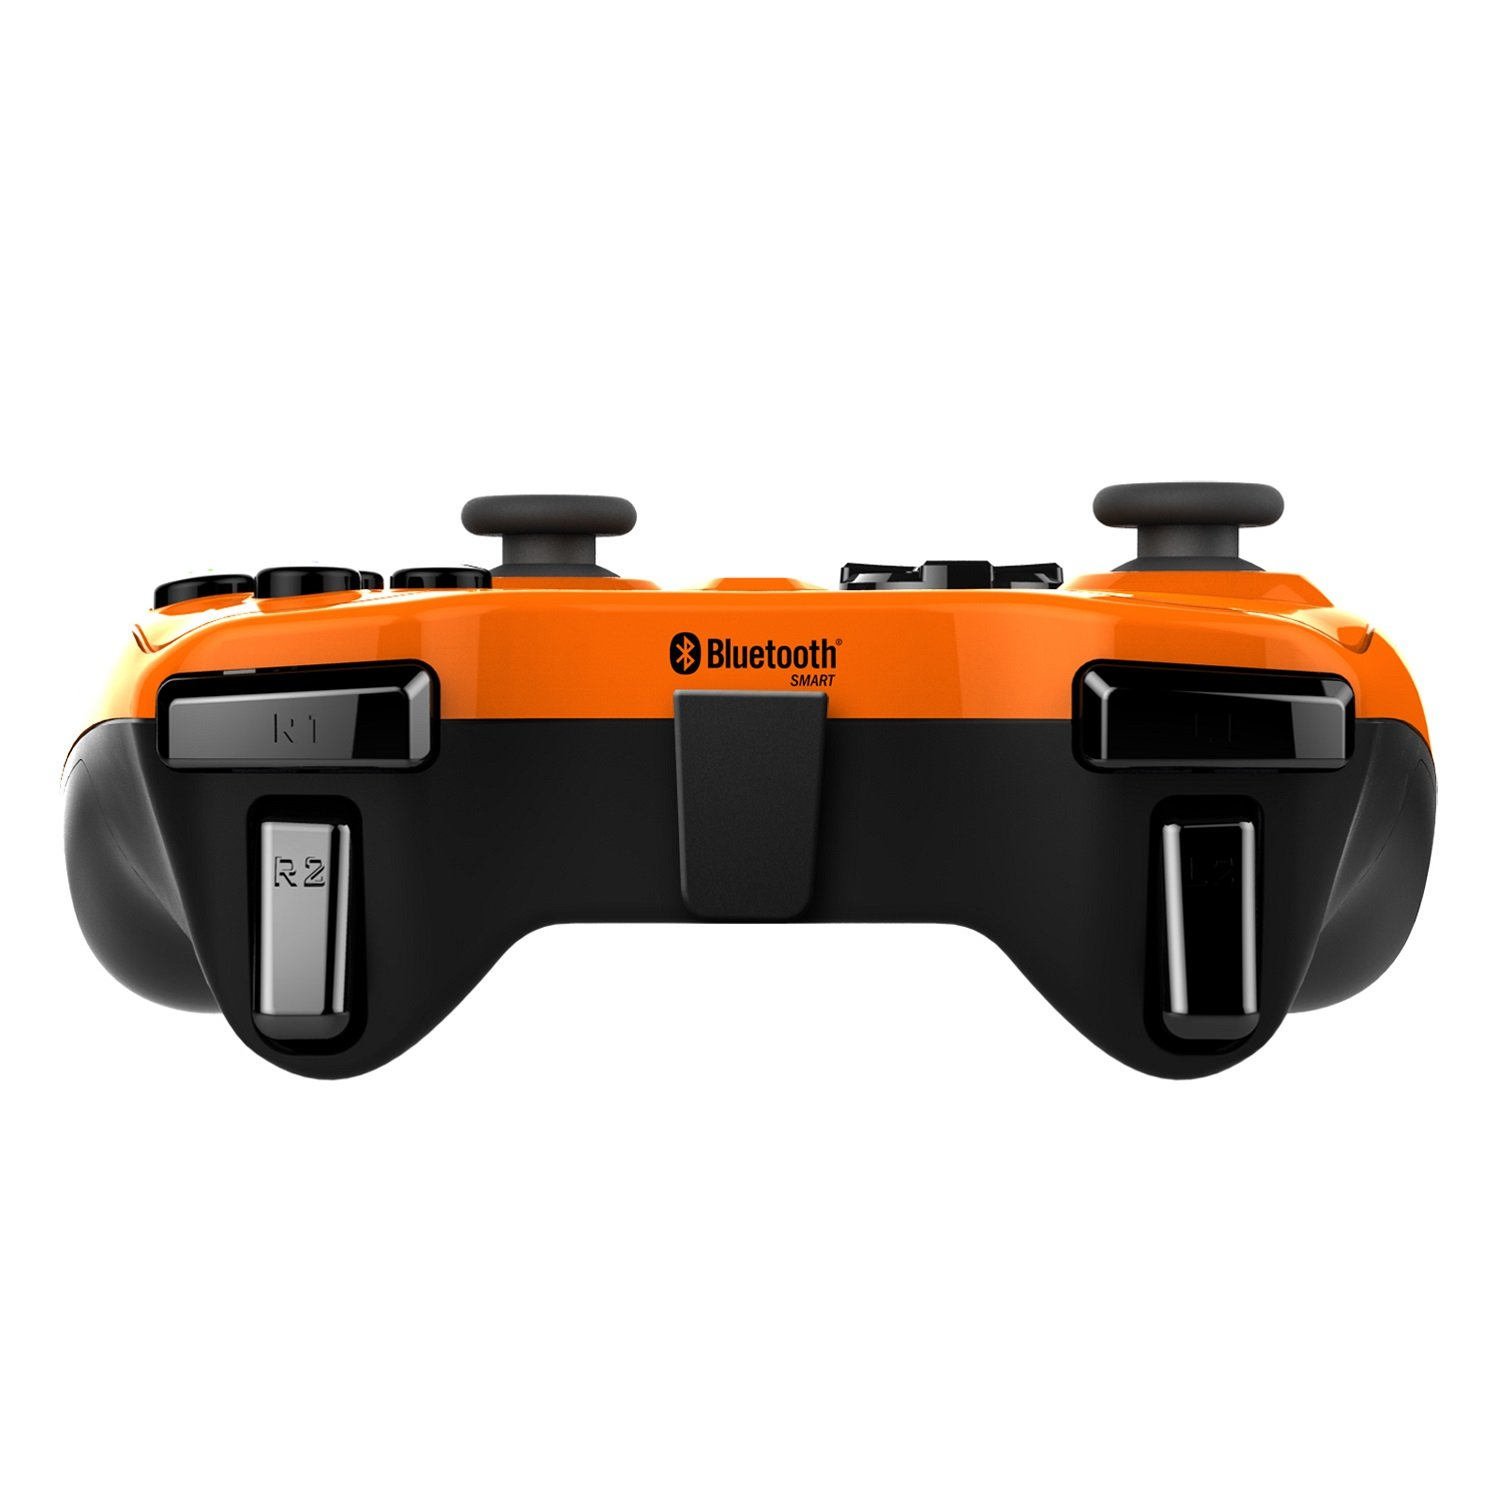 Mad Catz Micro C.T.R.L.i Mobile Gamepad Made for Apple IOS, Apple iPhone 7, iPod and iPad by Mad Catz (Image #5)